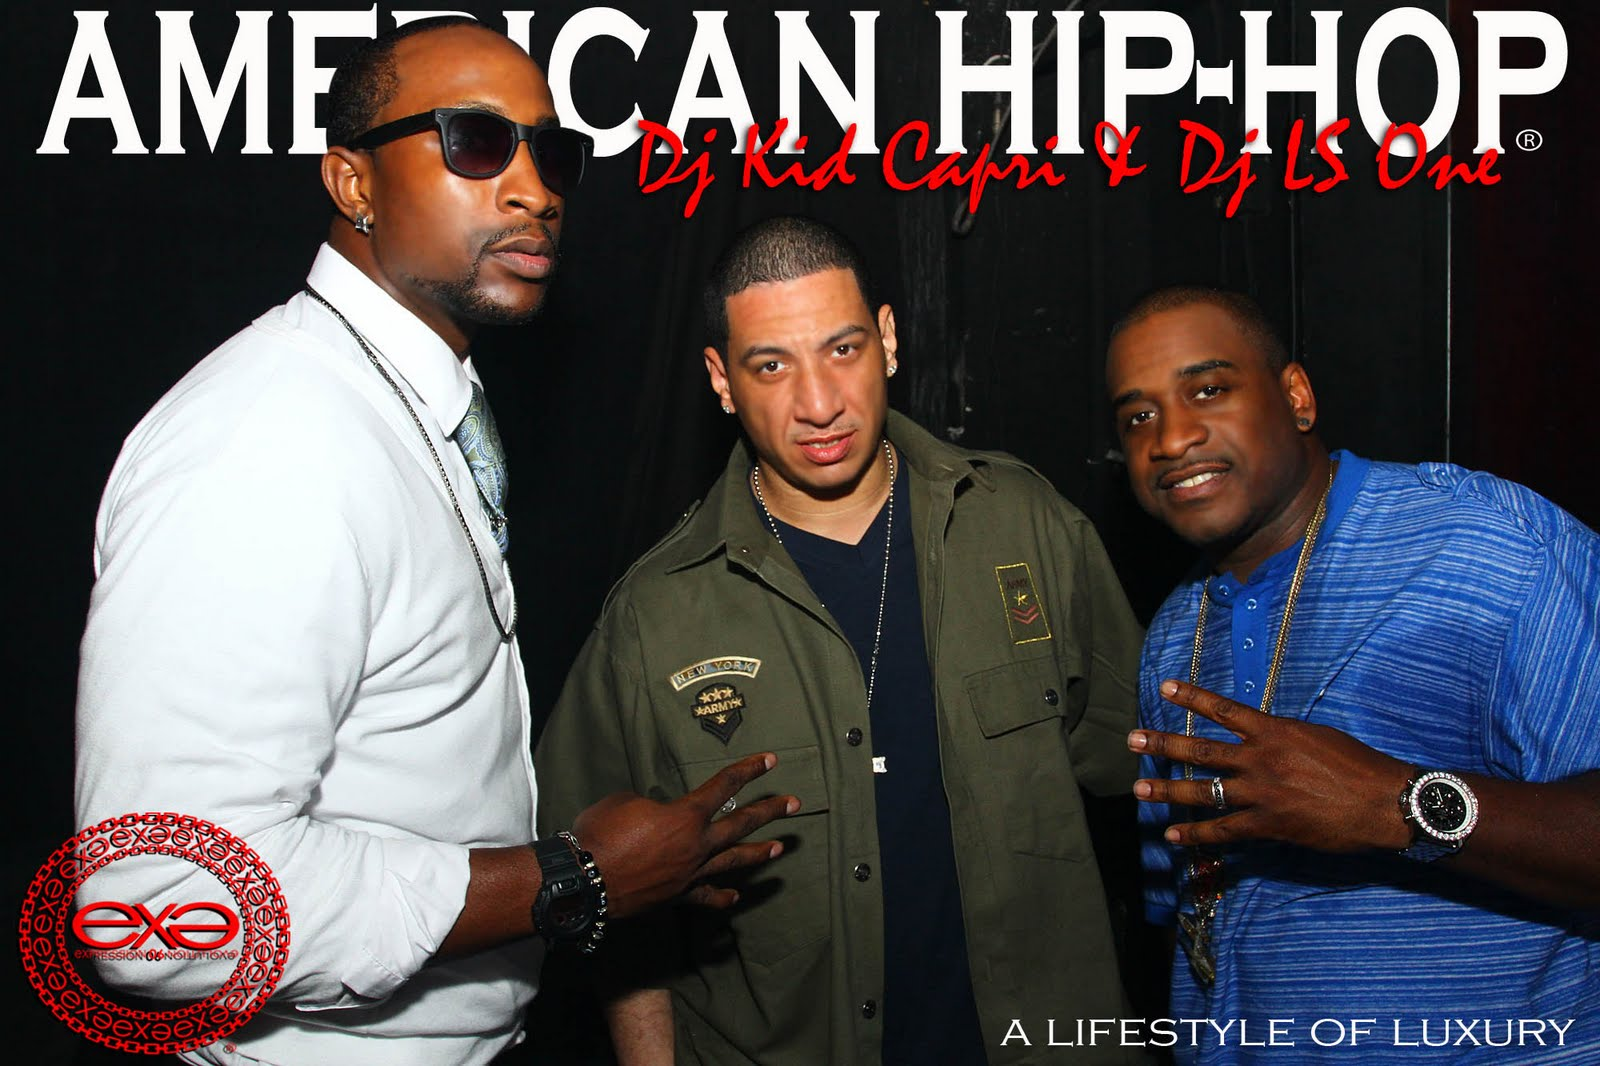 LIVING THA AMERICAN DREAM: WHO IS DJ KID CAPRI?